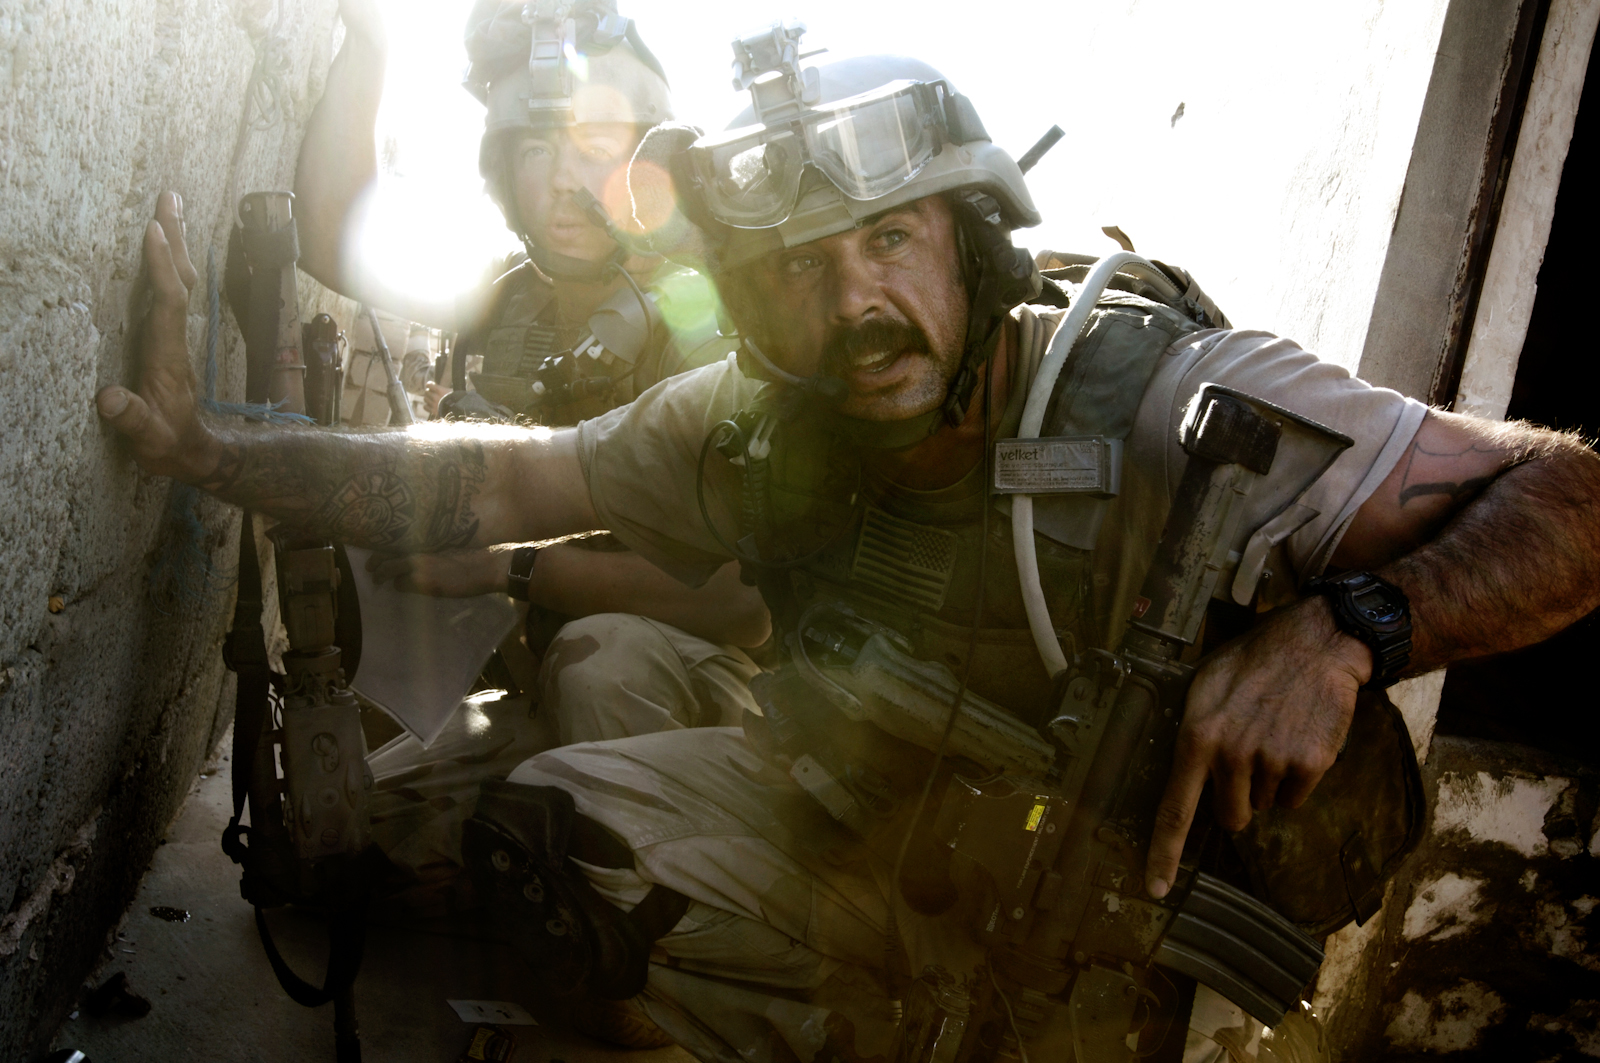 During the massive U.S. attack on the al Qaeda stronghold of Tall Afar,  Iraq, U.S. Special Forces engaged in heavy combat with insurgents who launched RPGs from rooftops, Sept. 4, 2005.